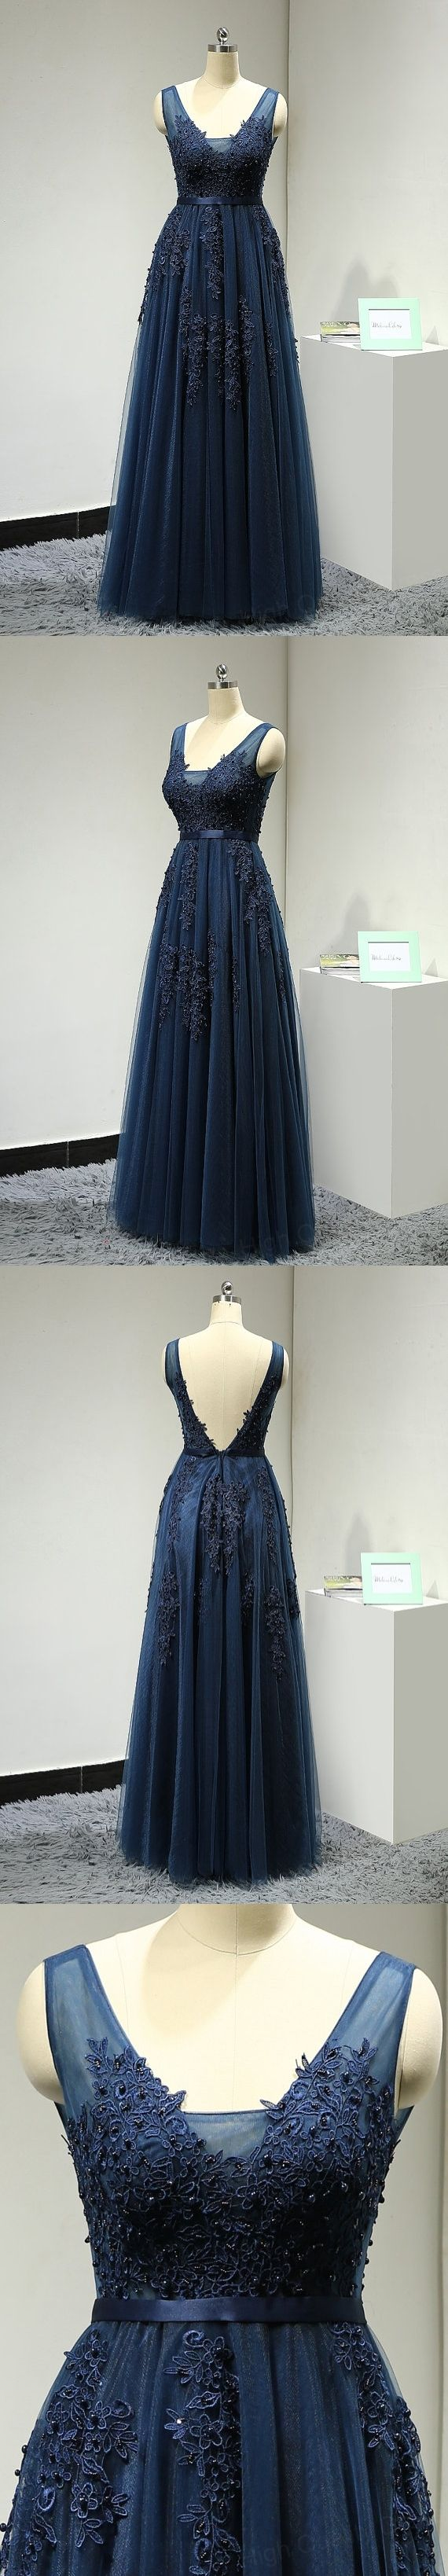 Long Prom Dresses , Sexy Backless Dark Navy Evening Dresses V Neck Lace Appliques Tulle Prom Party Dress Robe De Soiree formal Gowns